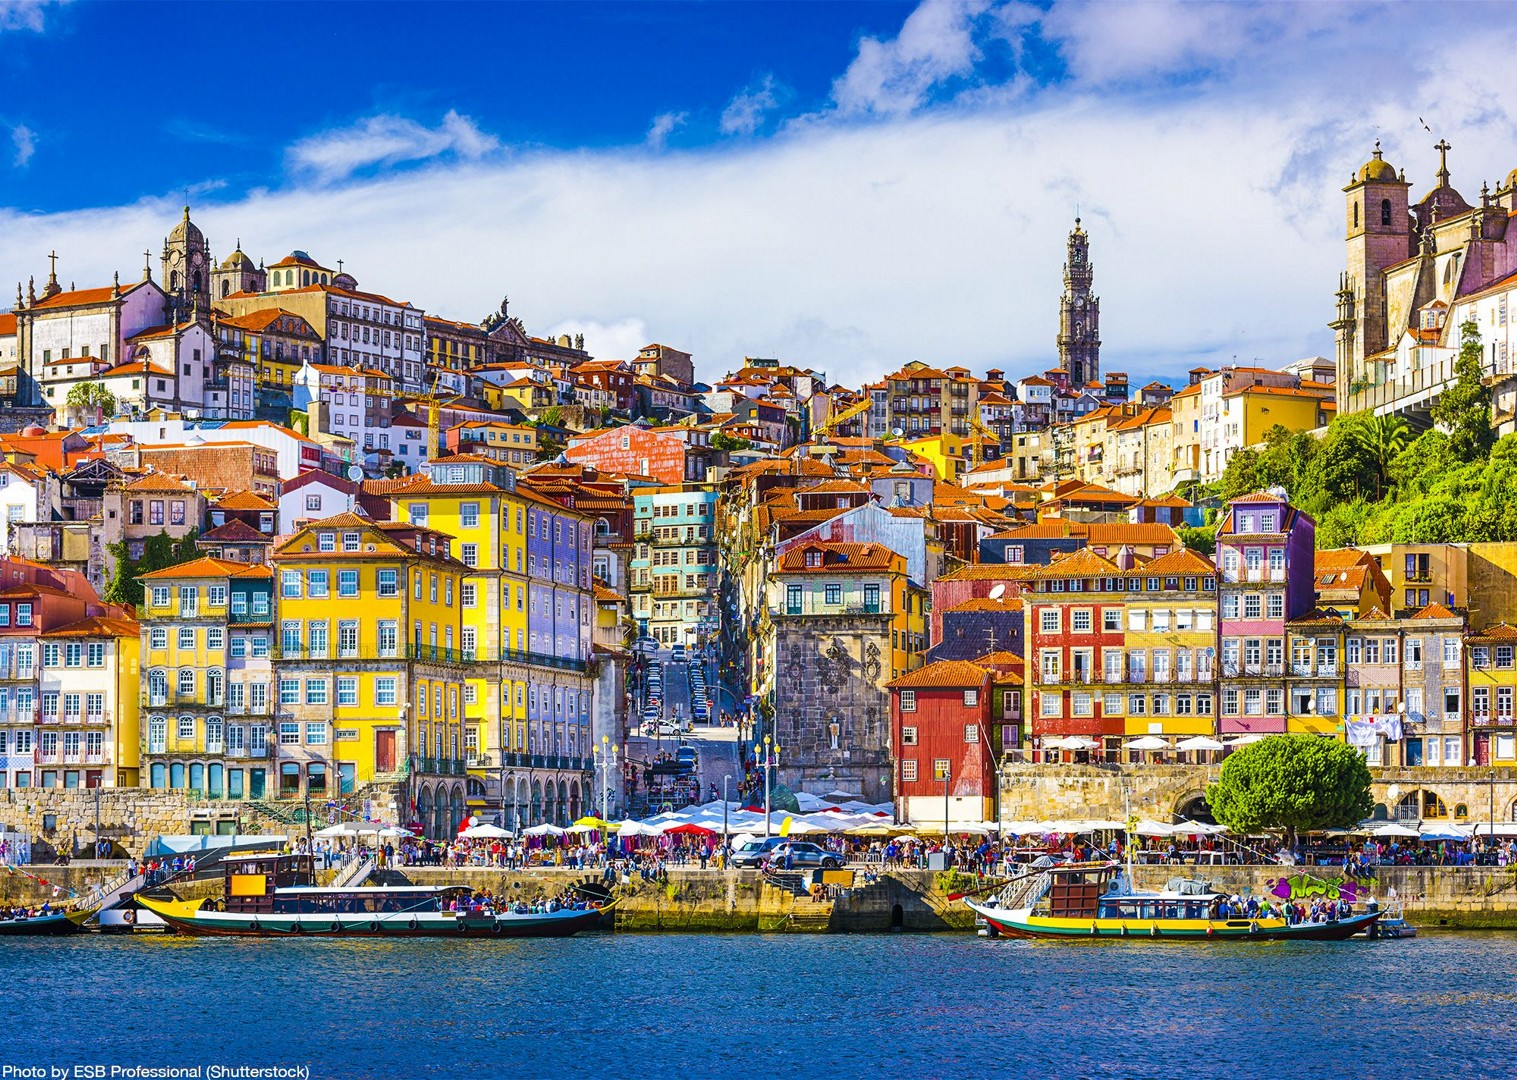 porto-visit-by-bike-accommodation-included-tour-saddle-skedaddle.jpg - Portugal - Port and Wine - Self Guided Leisure Cycling Holiday - Leisure Cycling